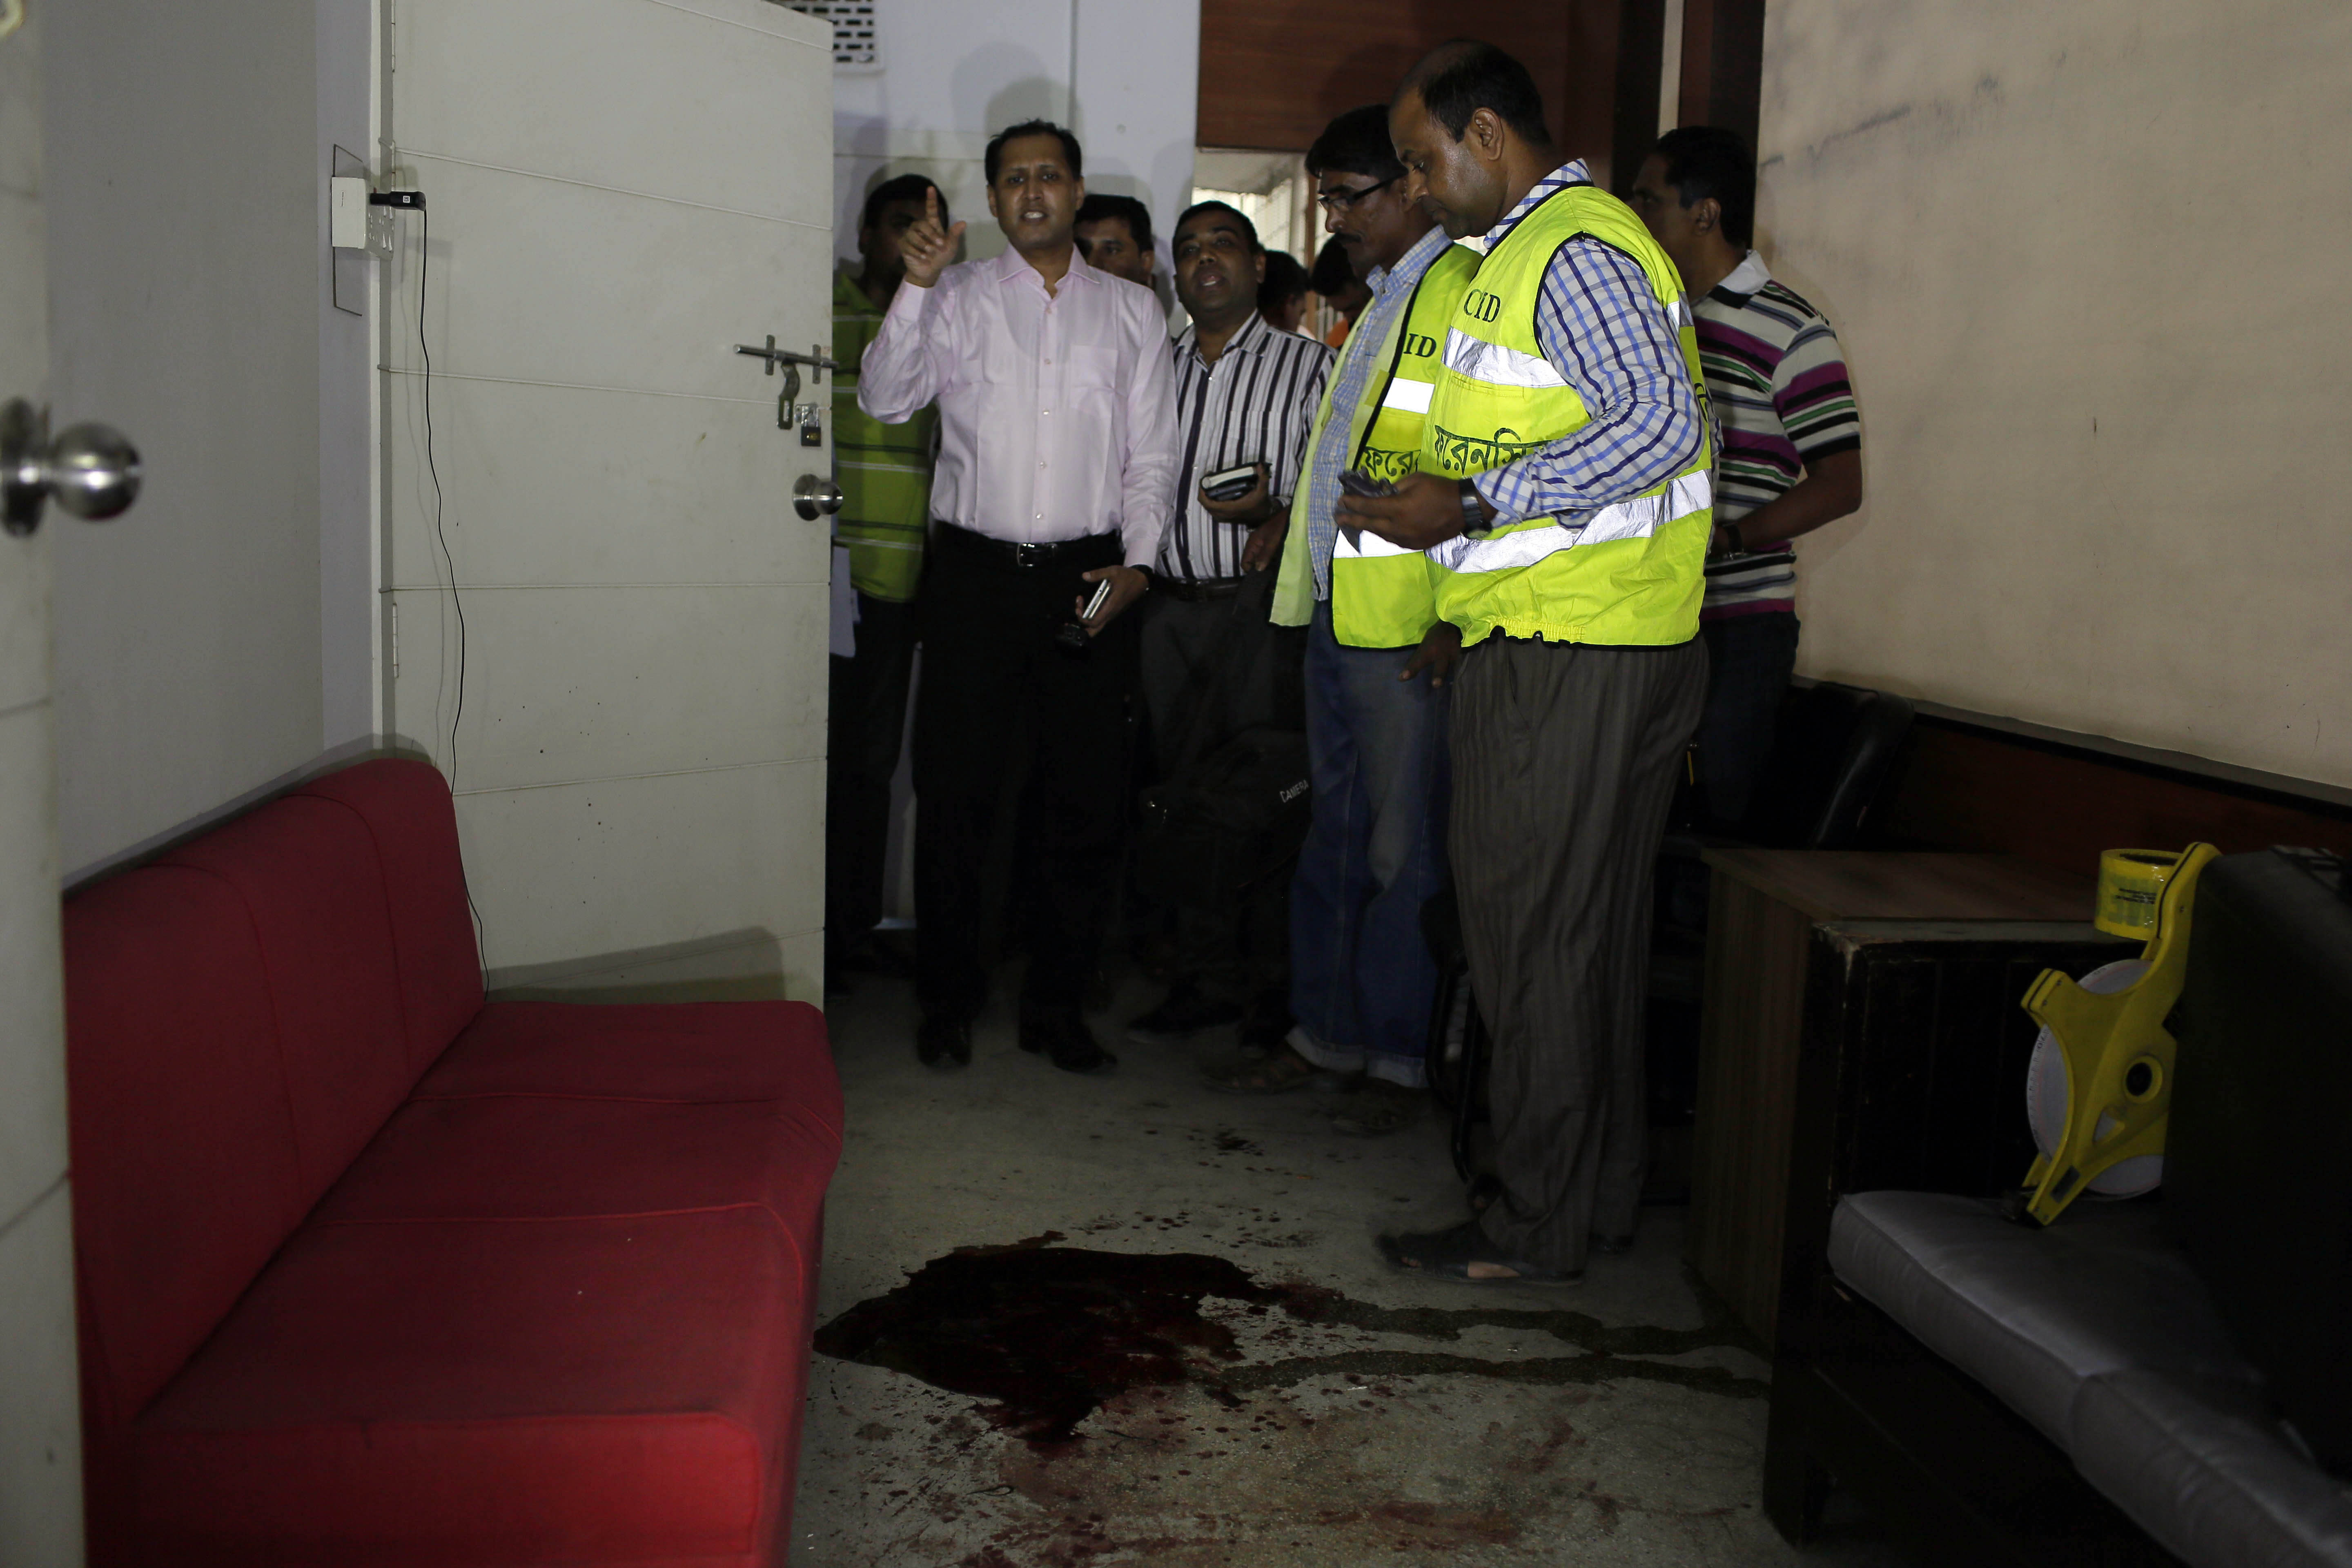 Bangladeshi security officers inspect the blood-stained site where publisher Ahmed Rahim Tutul and two writers were shot and stabbed by assailants in the office of the Shudhdhoswar publishing house, in Dhaka, Bangladesh, Oct. 31, 2015.